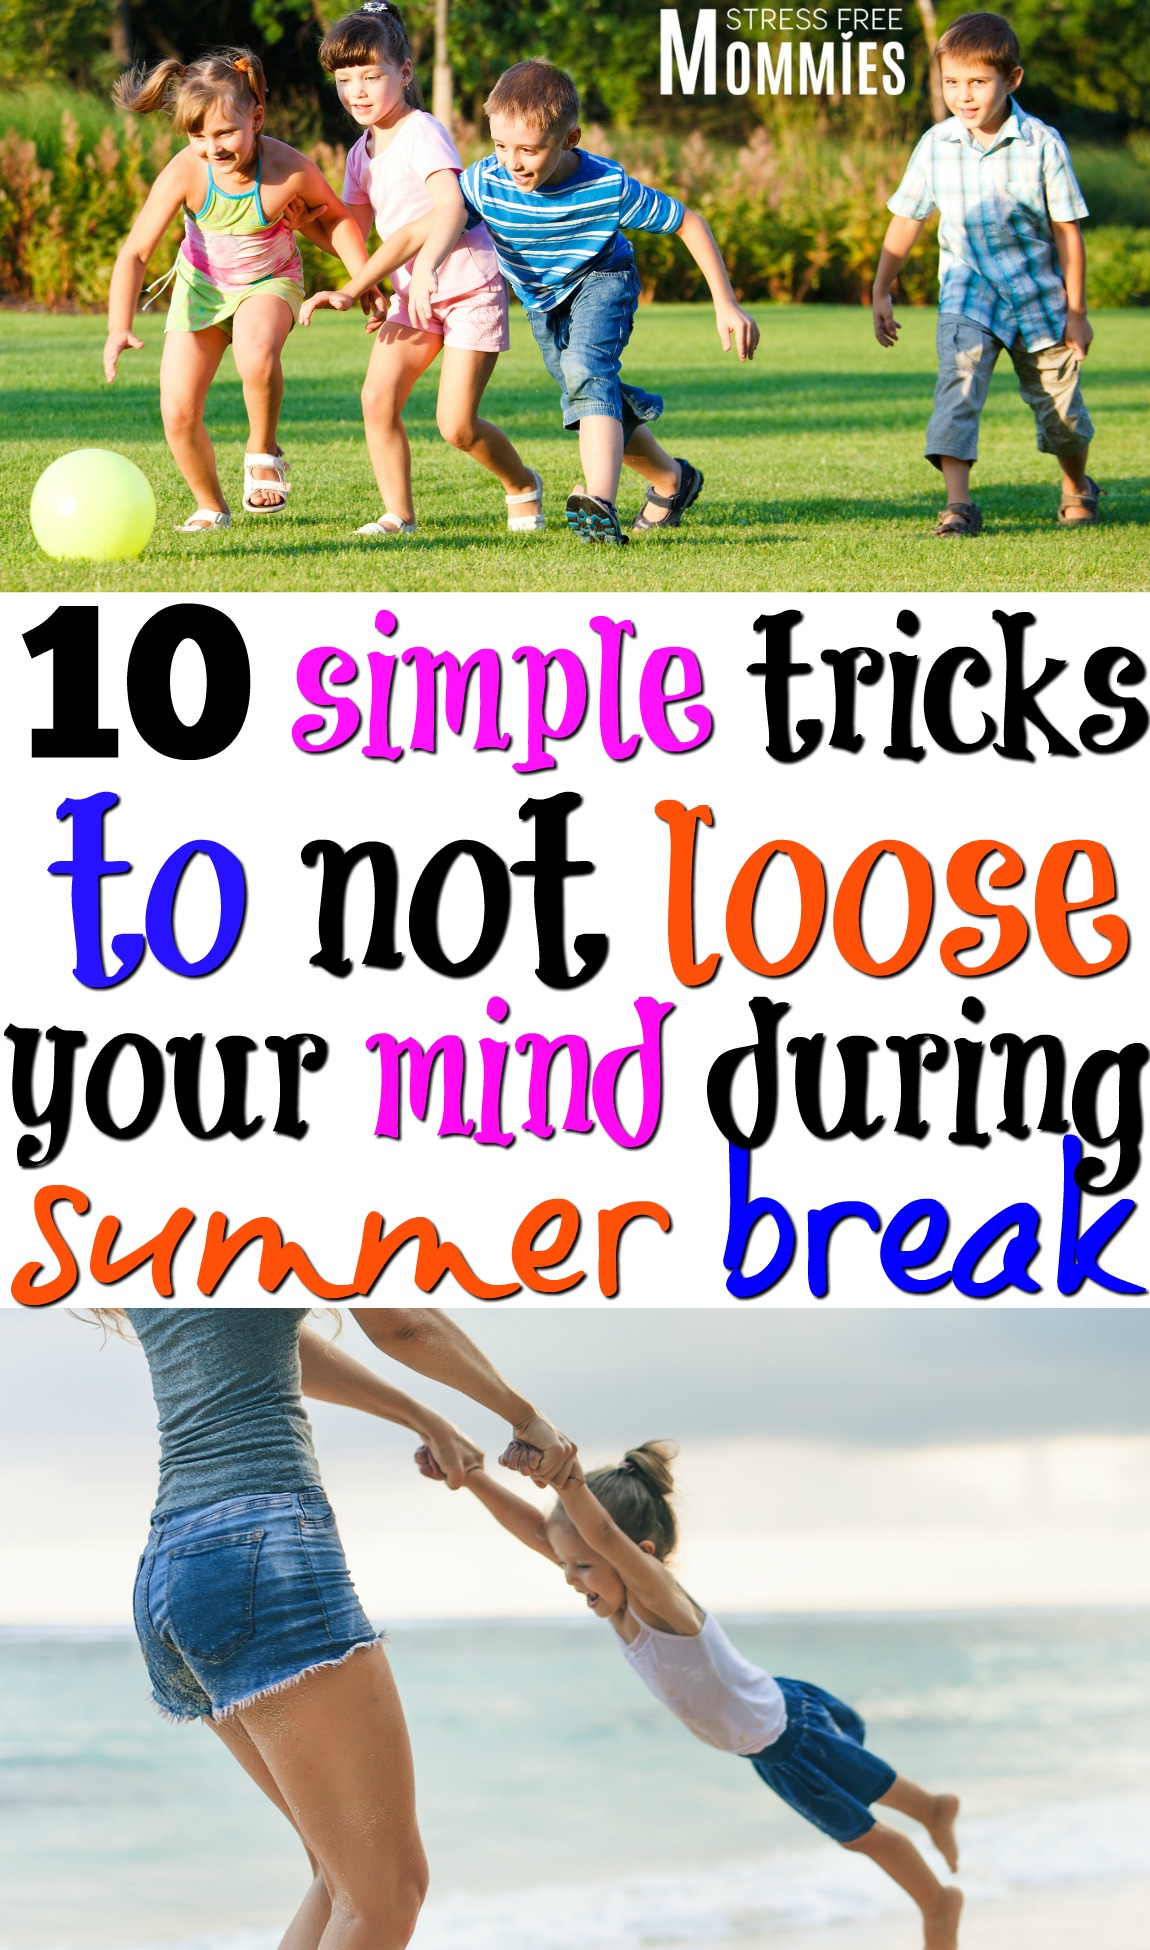 10 simple tricks to not loose your mind during summer break. These tips will help you not loose your cool, but rather enjoy summer break with your kids. #summerbreak #summervacation #parenting